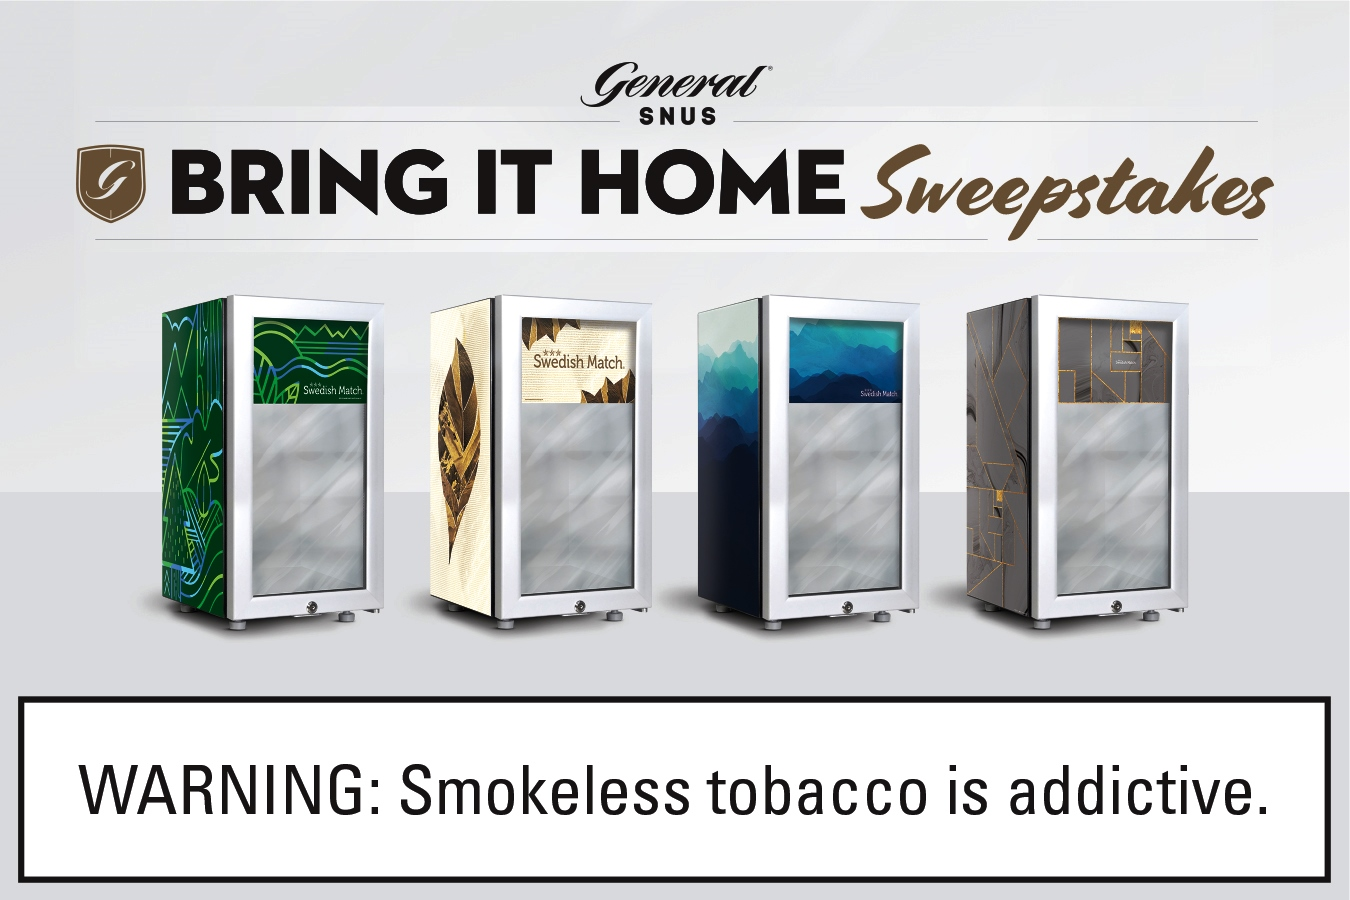 The General Snus Bring it Home Sweepstakes